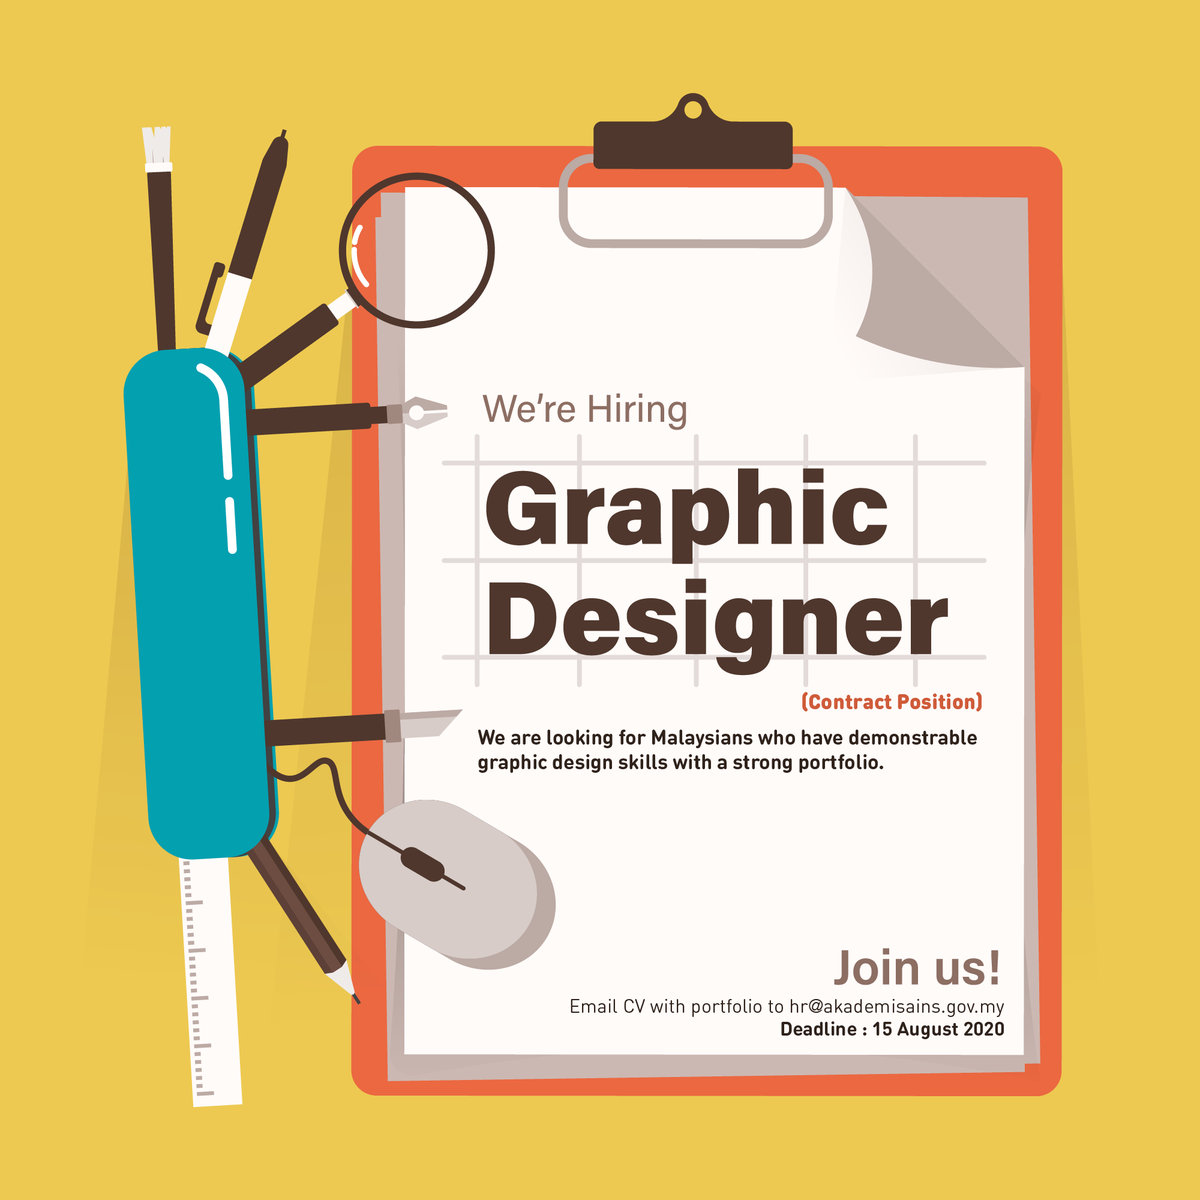 #NowHiring graphic designer. Showcase your designing skills with us. 💻🎨  Apply here:    For more info, please contact us at 03-6203 0633.  @MauKerjaMY @Oh_KerjaKosong @kerja_kosongMY @kerjakosong123 @twt_kerja #GraphicDesigner